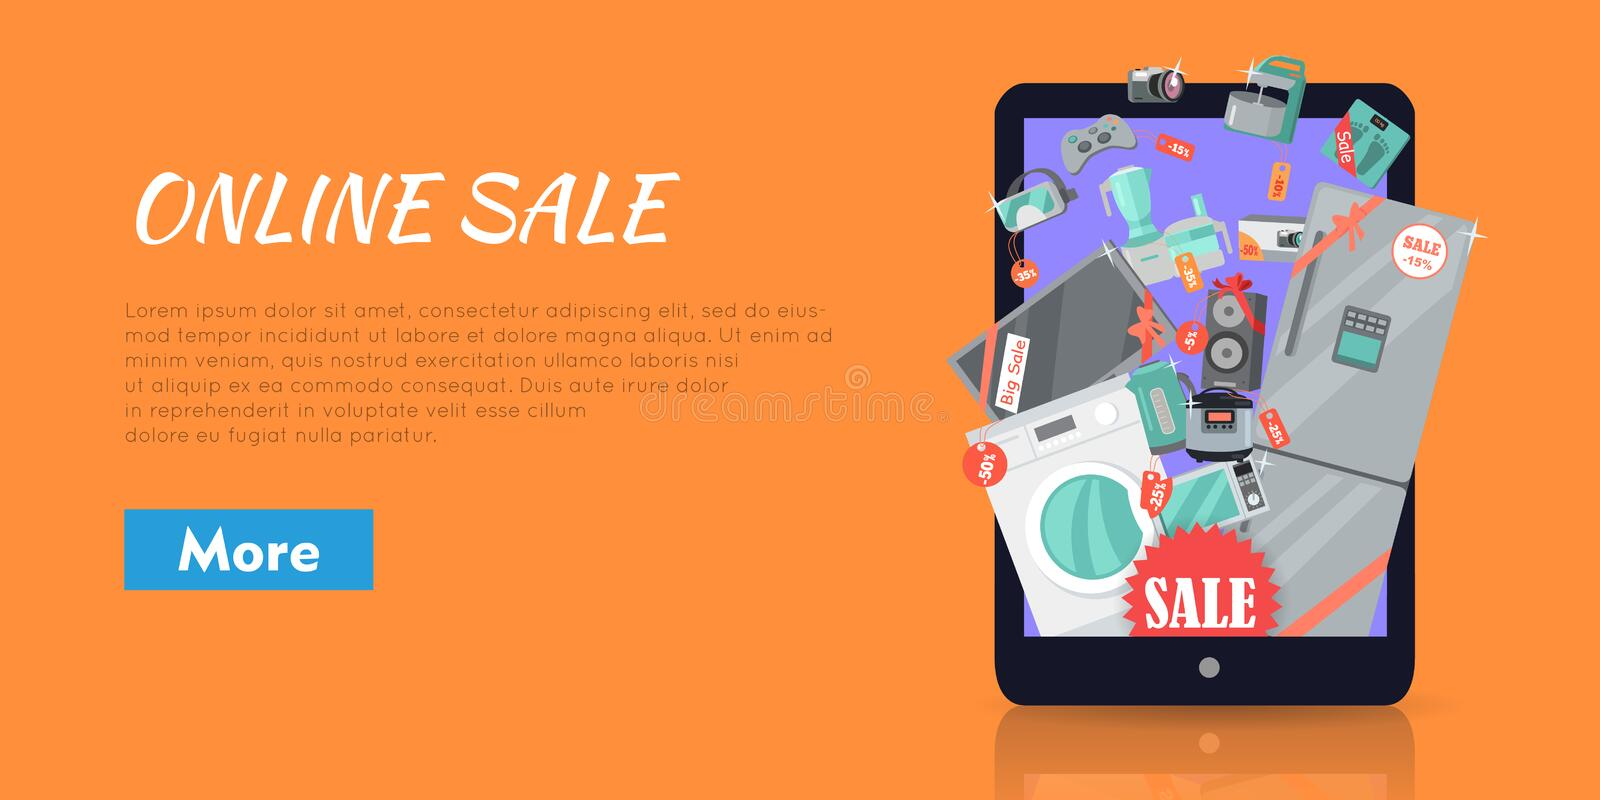 Online Supermarket Sale Appliances in Suitcase. Online sale. Supermarket Sale. Household appliances flat style in suitcase. For electronics stores advertising royalty free illustration